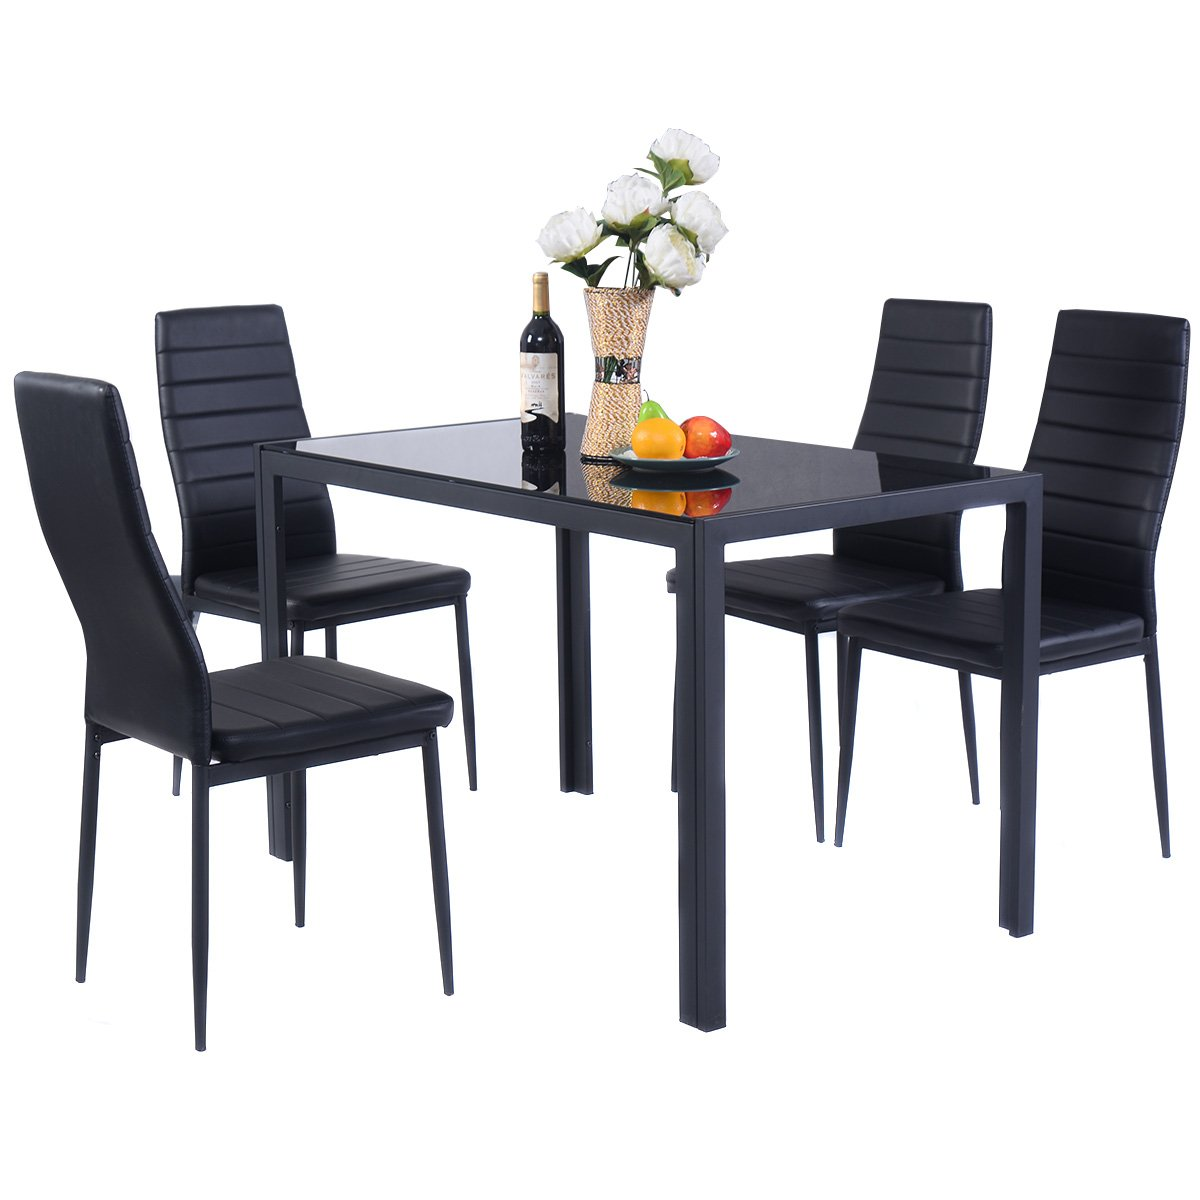 Giantex 5 Piece Kitchen Dining Table Set with Glass Table Top Leather Padded 4 Chairs and Metal Frame Table for Breakfast Dining Room Kitchen Furniture, Black HW52382+